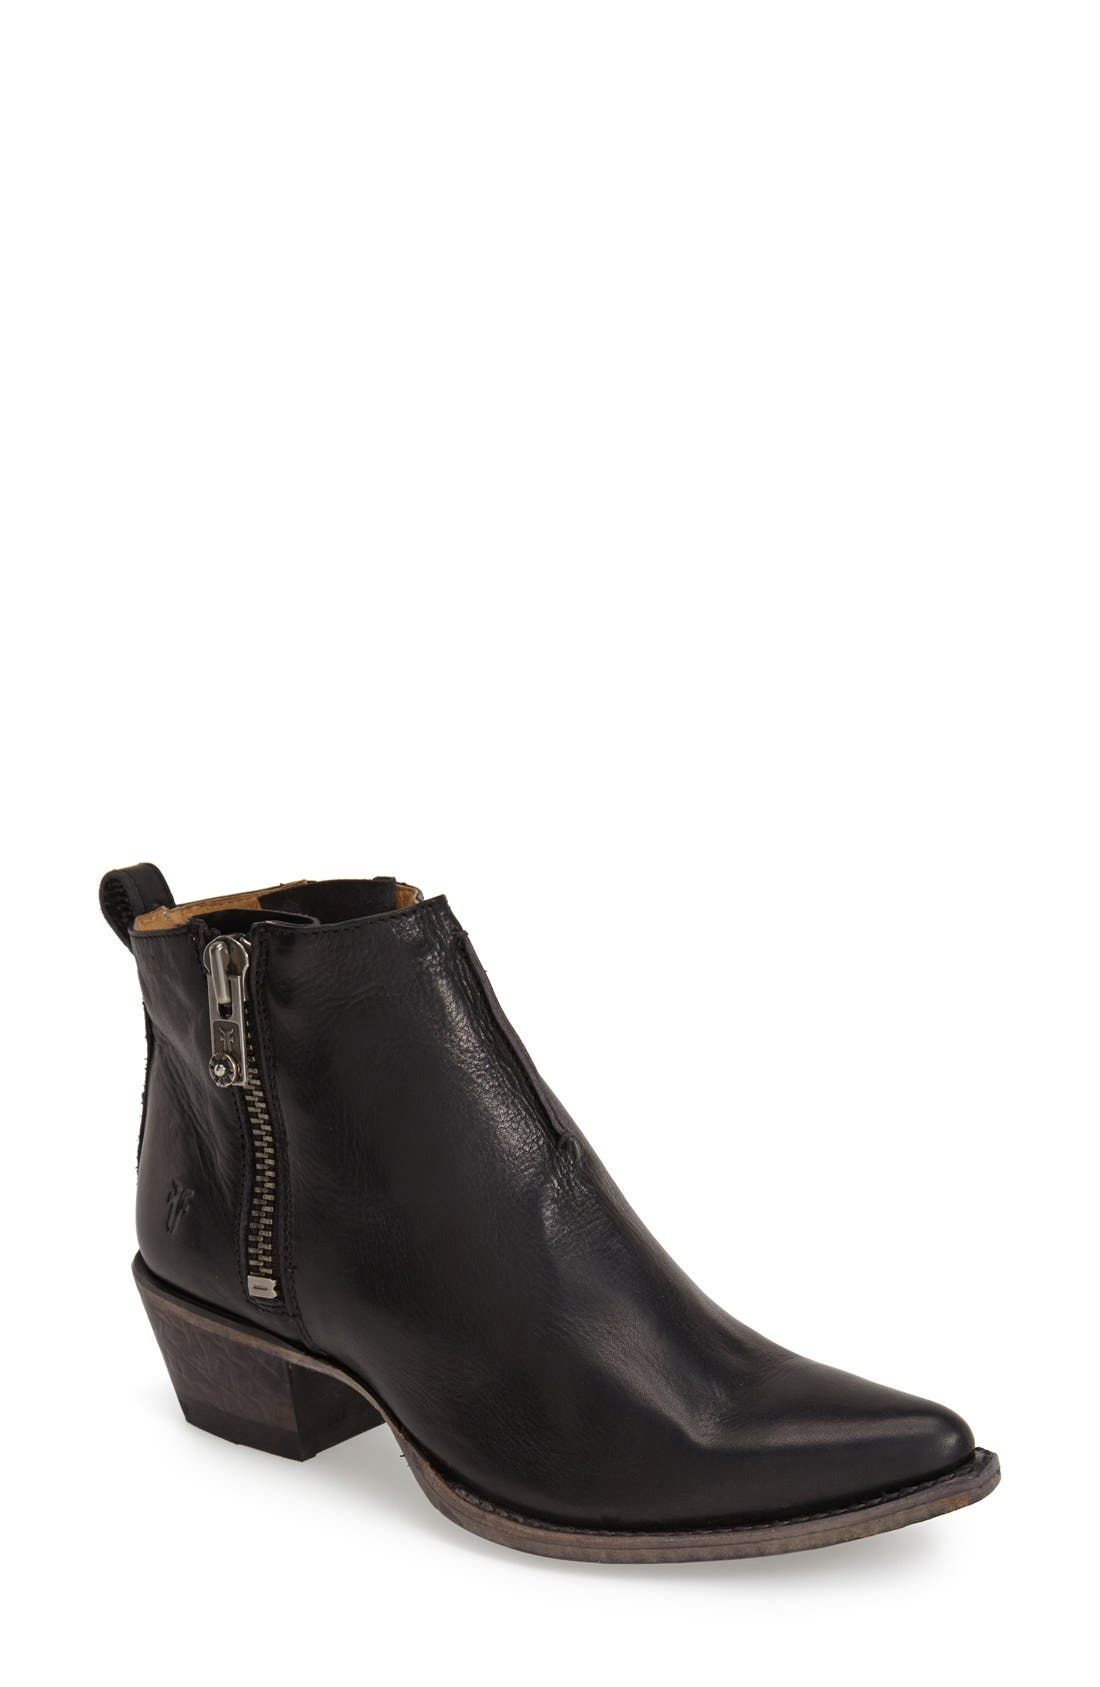 'Sacha' Washed Leather Ankle Boot,                             Main thumbnail 1, color,